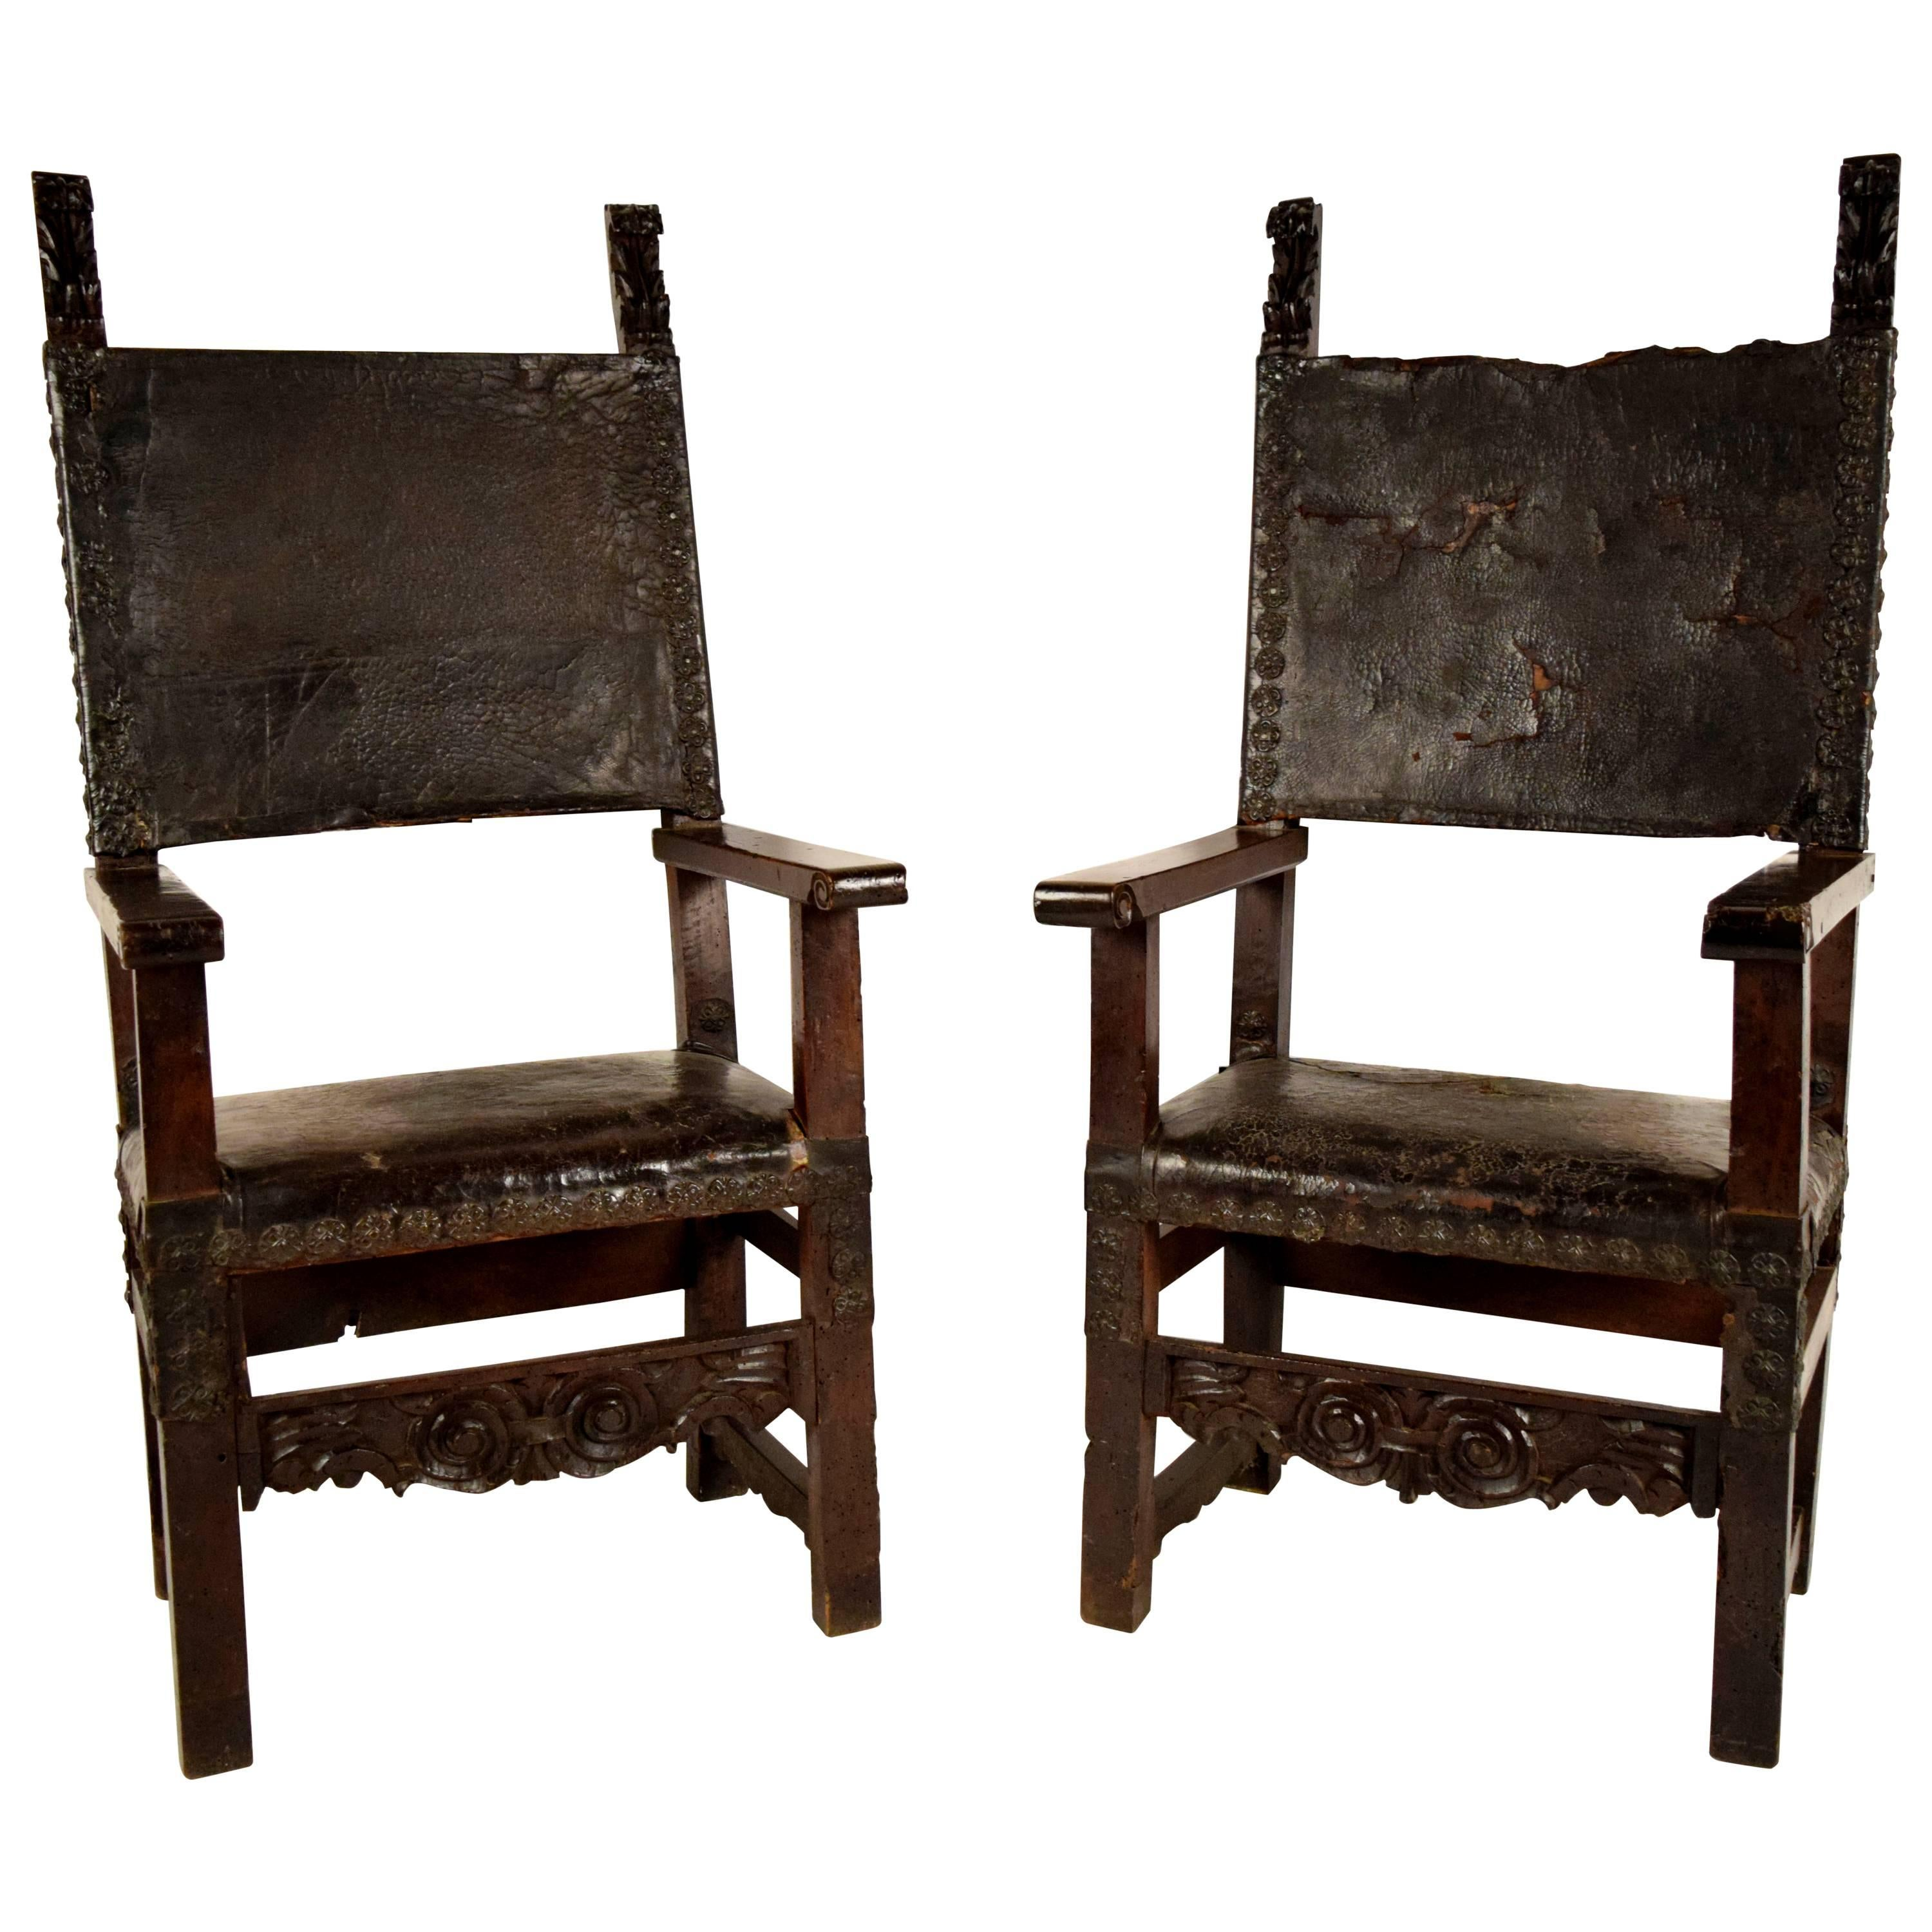 Pair of 18th Century Spanish Colonial Throne Chairs